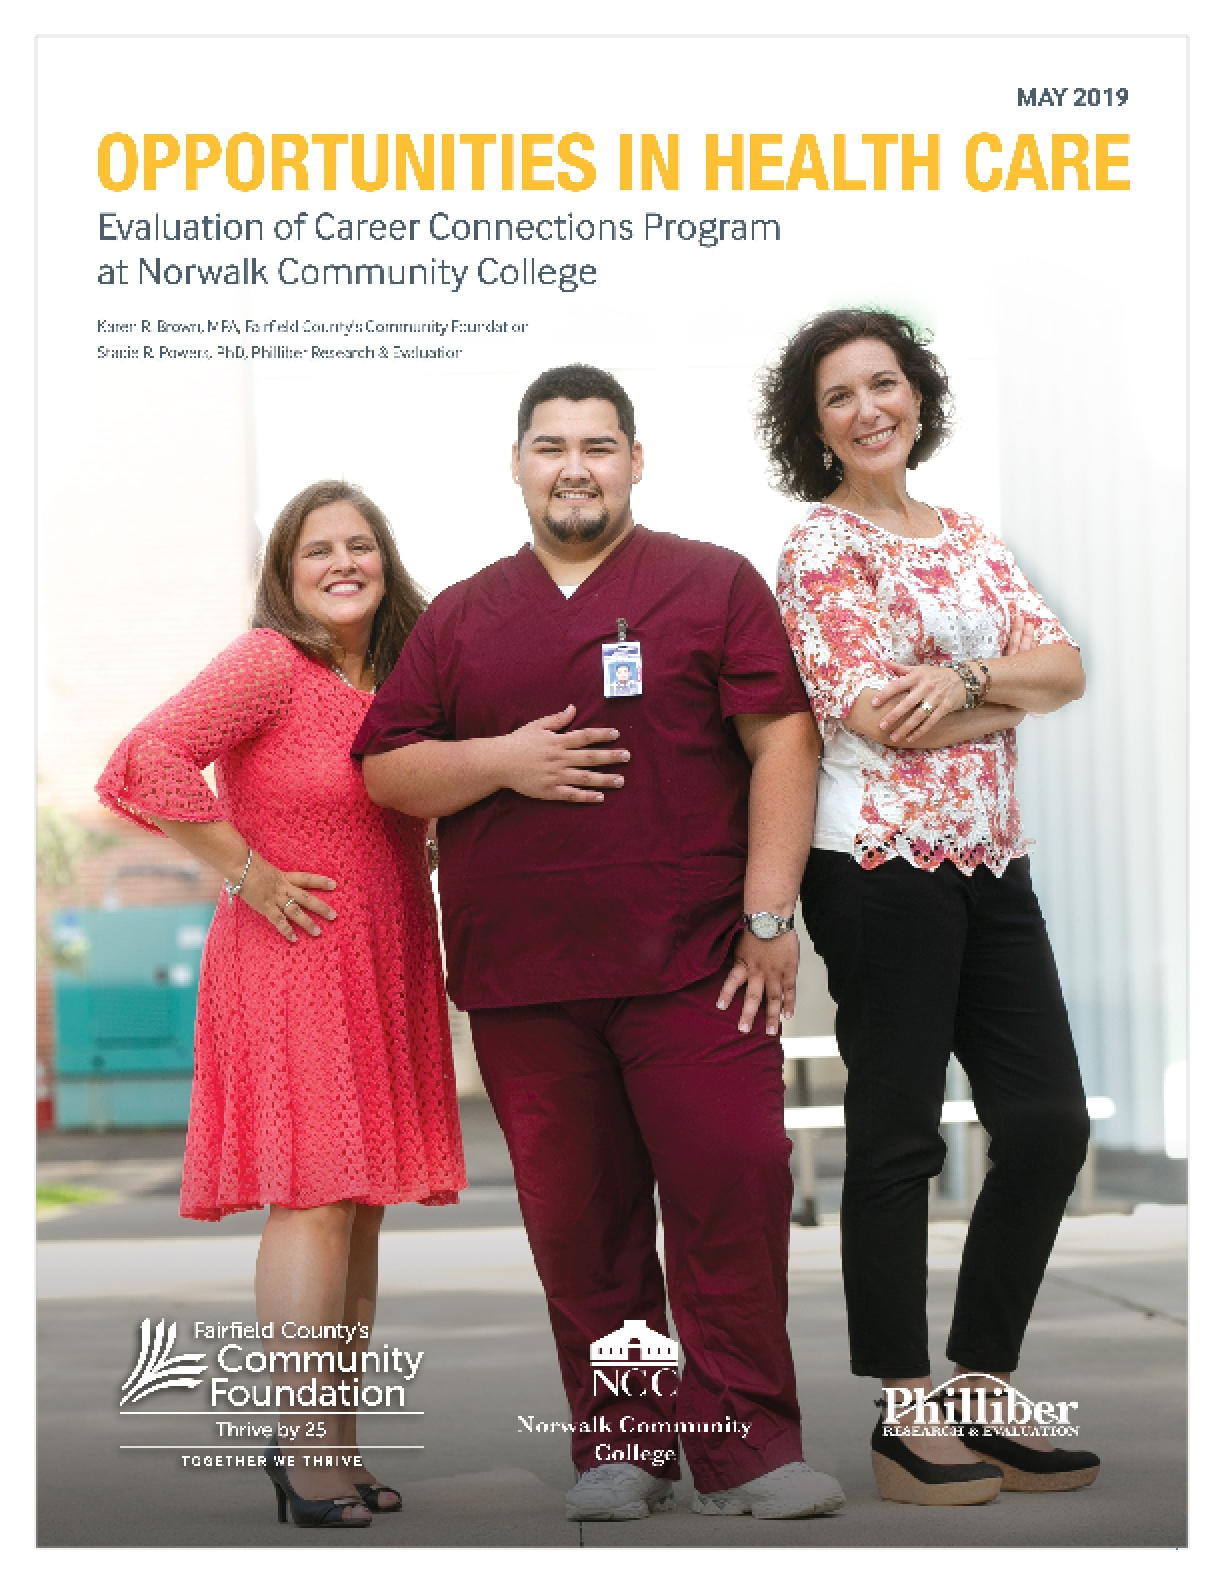 Opportunities in Health Care: Evaluation of Career Connections Program at Norwalk Community College